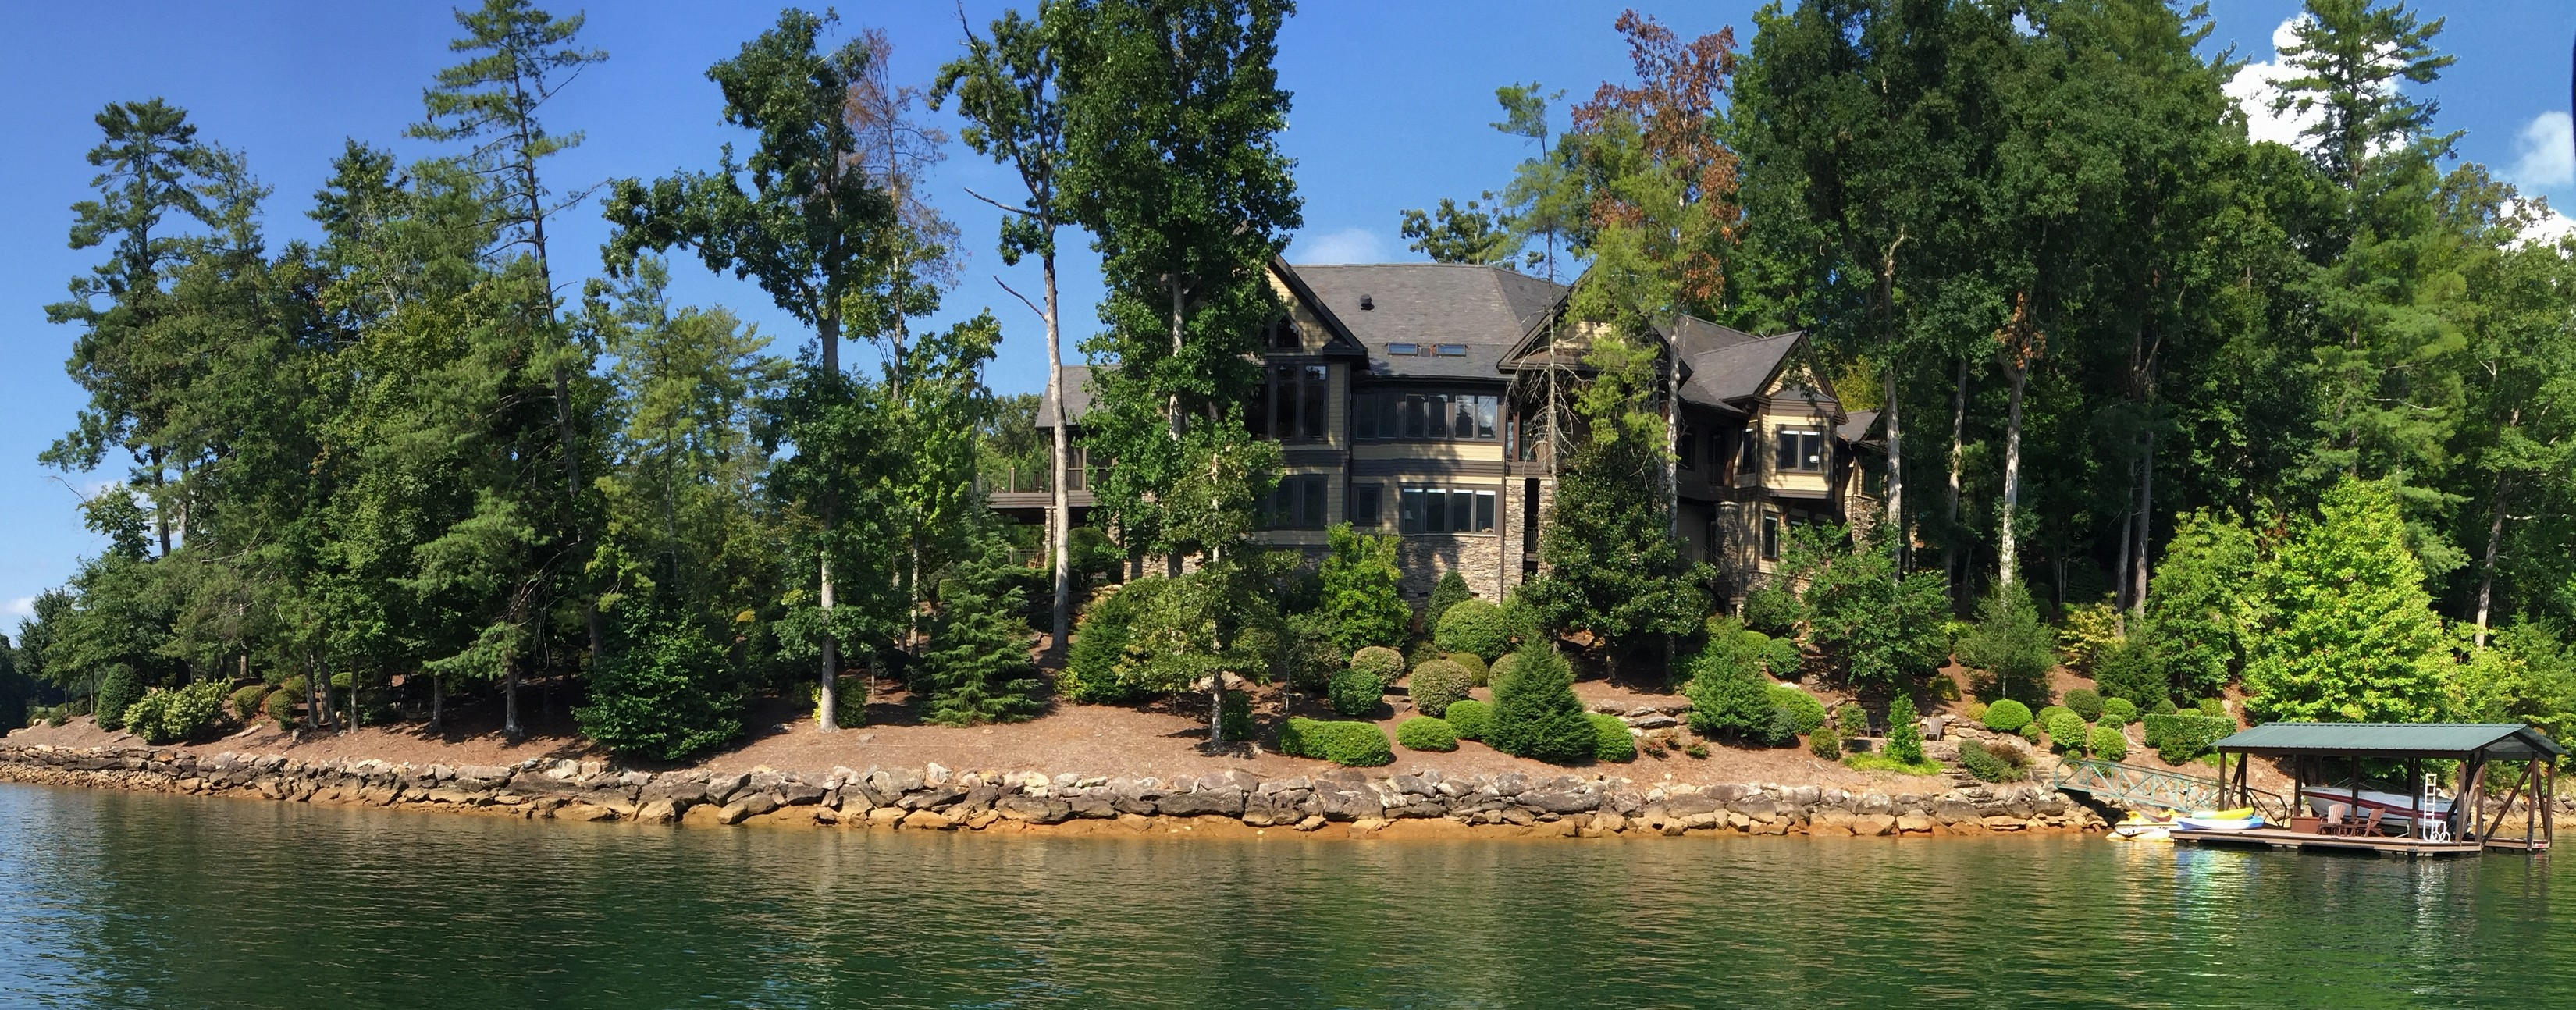 Single Family Home for Sale at Outstanding Lakeside Retreat With Breathtaking Views From a Superb Peninsula 107 Nine Bark Way Sunset, South Carolina, 29685 United States